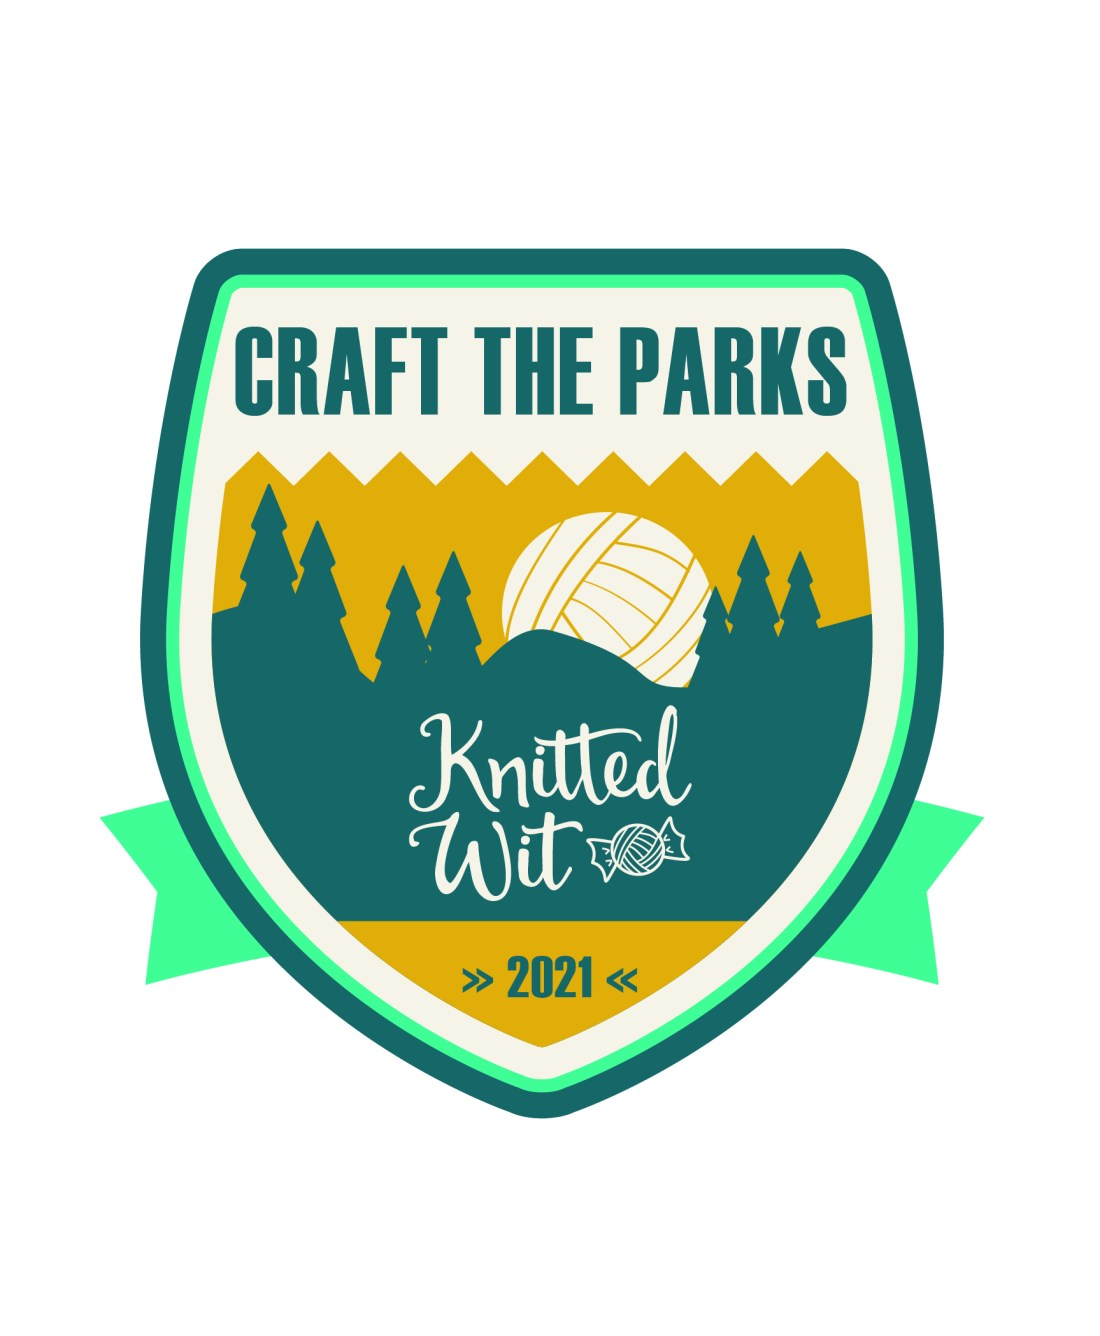 Craft the Parks 2021